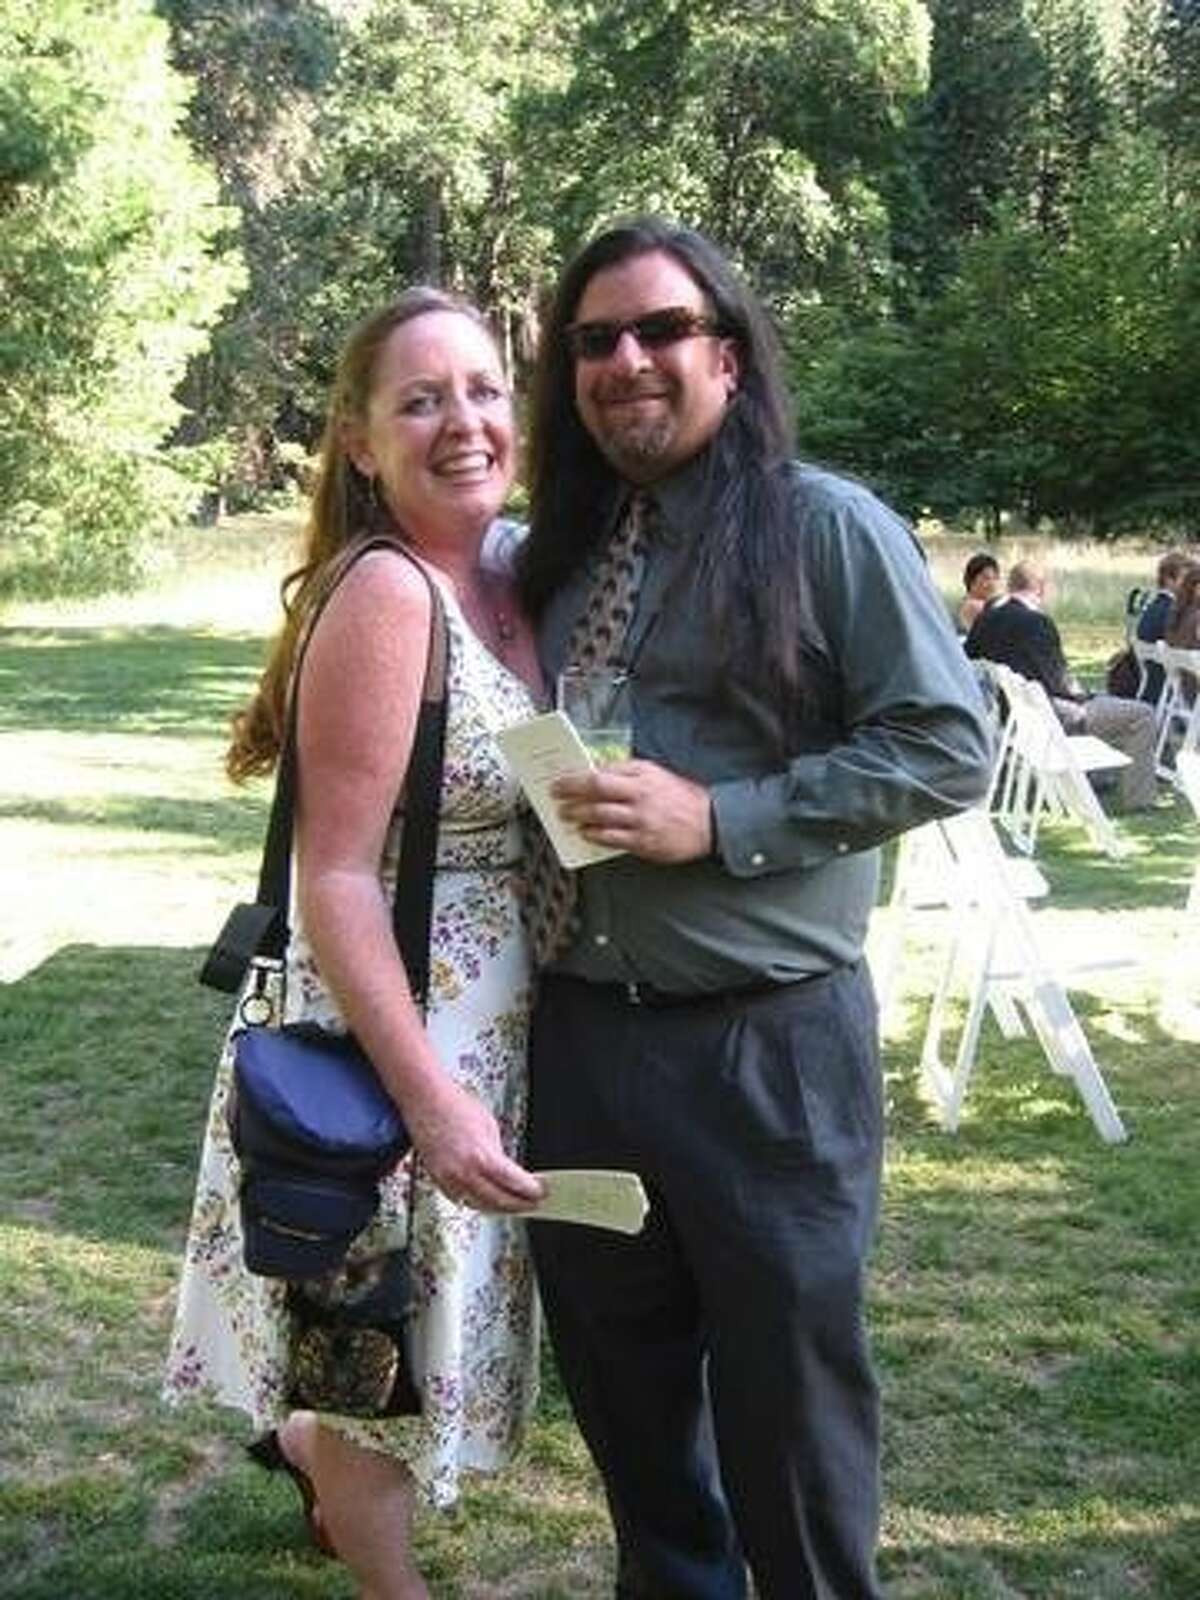 Mary Atchison was allegedly killed by her boyfriend, Jules Sibilio, (right). Atchison was found dead in her Bernal Heights home on Aug. 26, 2014.